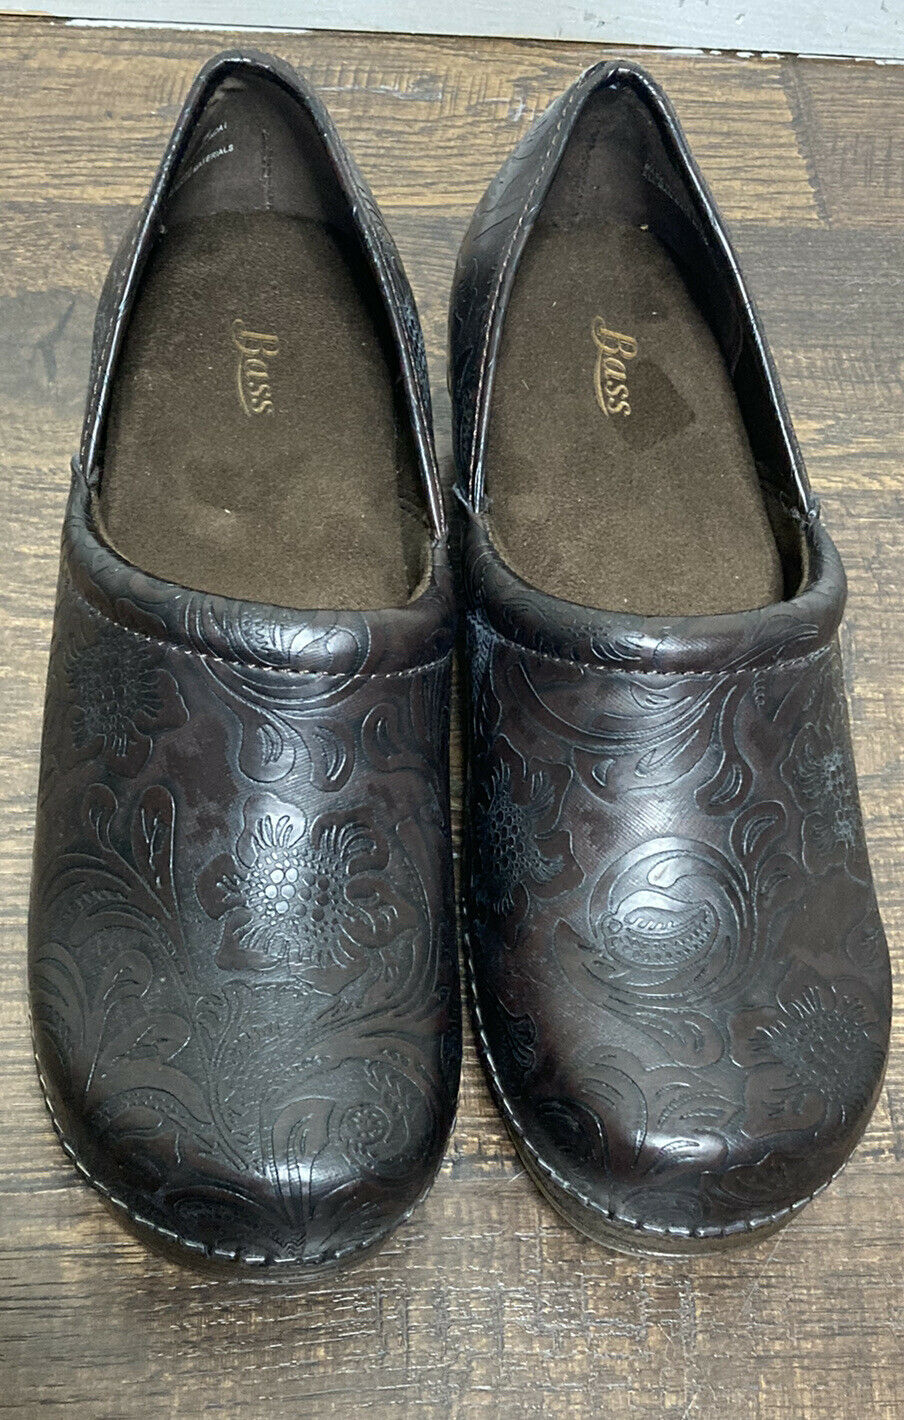 BASS Melinda Scrolled Brown 2 Inch Heel Clogs Women's Size 8 M New Without Box